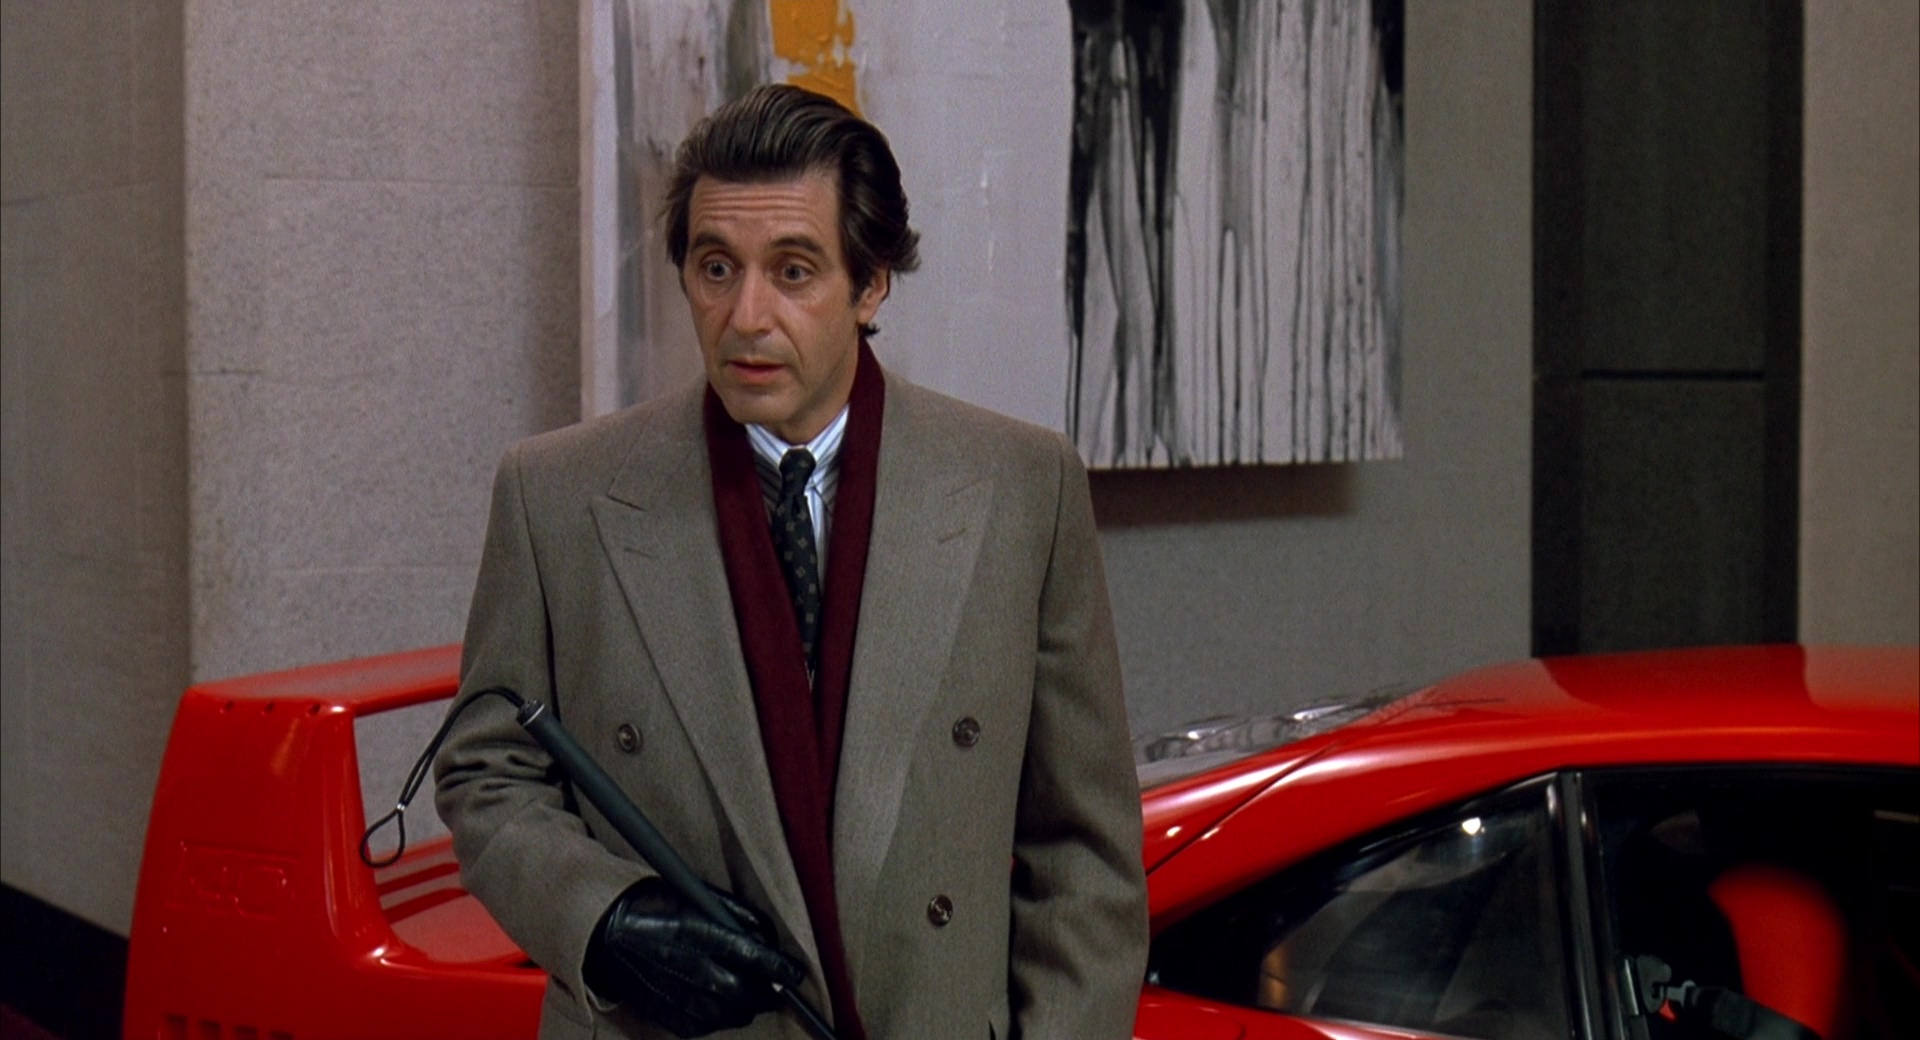 Exotic Car Brands >> Ferrari Car Dealer (Chris O'Donnell and Al Pacino) in Scent of a Woman (1992) Movie